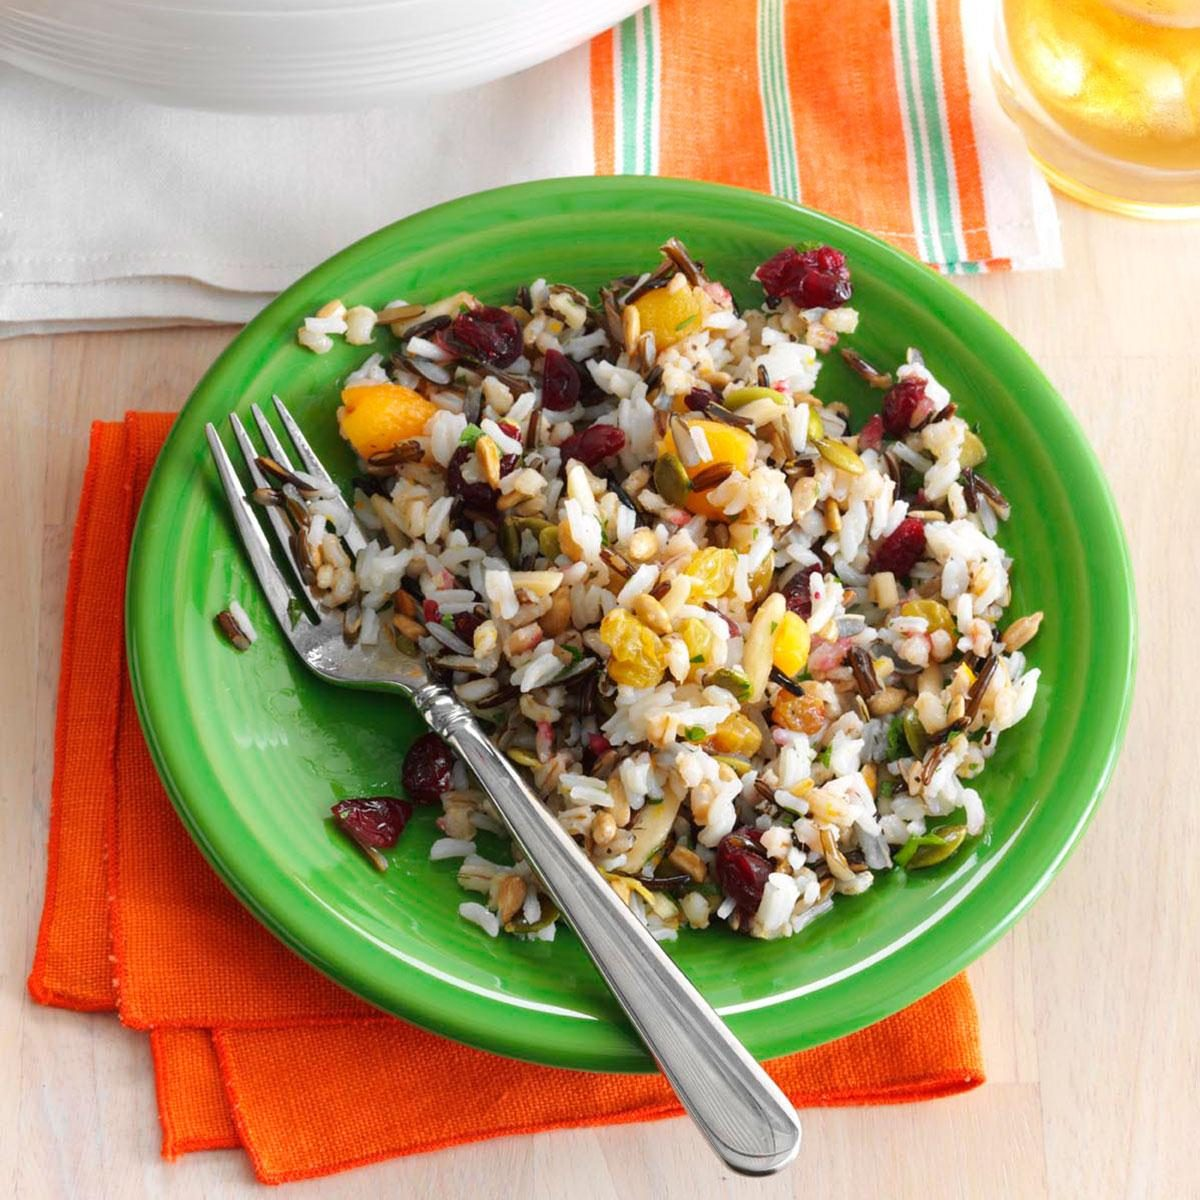 Day 27: Great Grain Salad